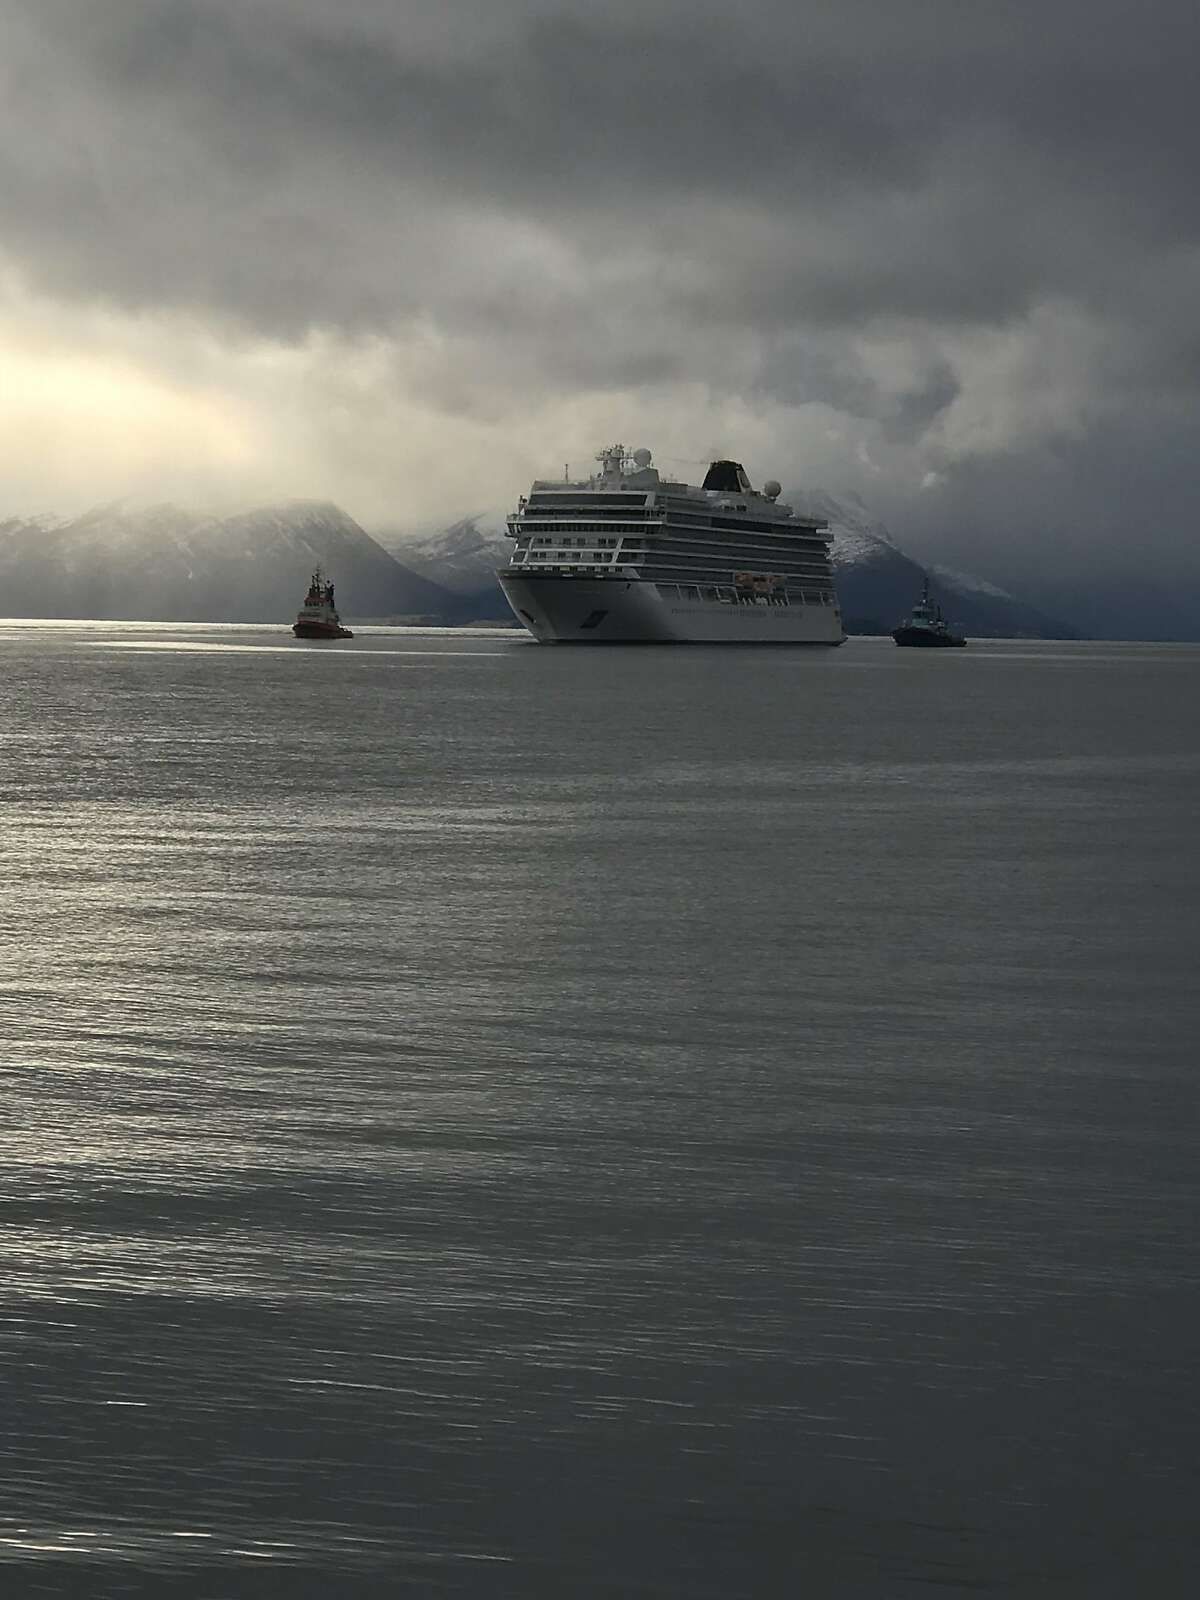 Dawn and Peter Schurman were aboard the Viking Sky cruise ship and had to be rescued by helicopter last month when a storm caused the engines to fail.